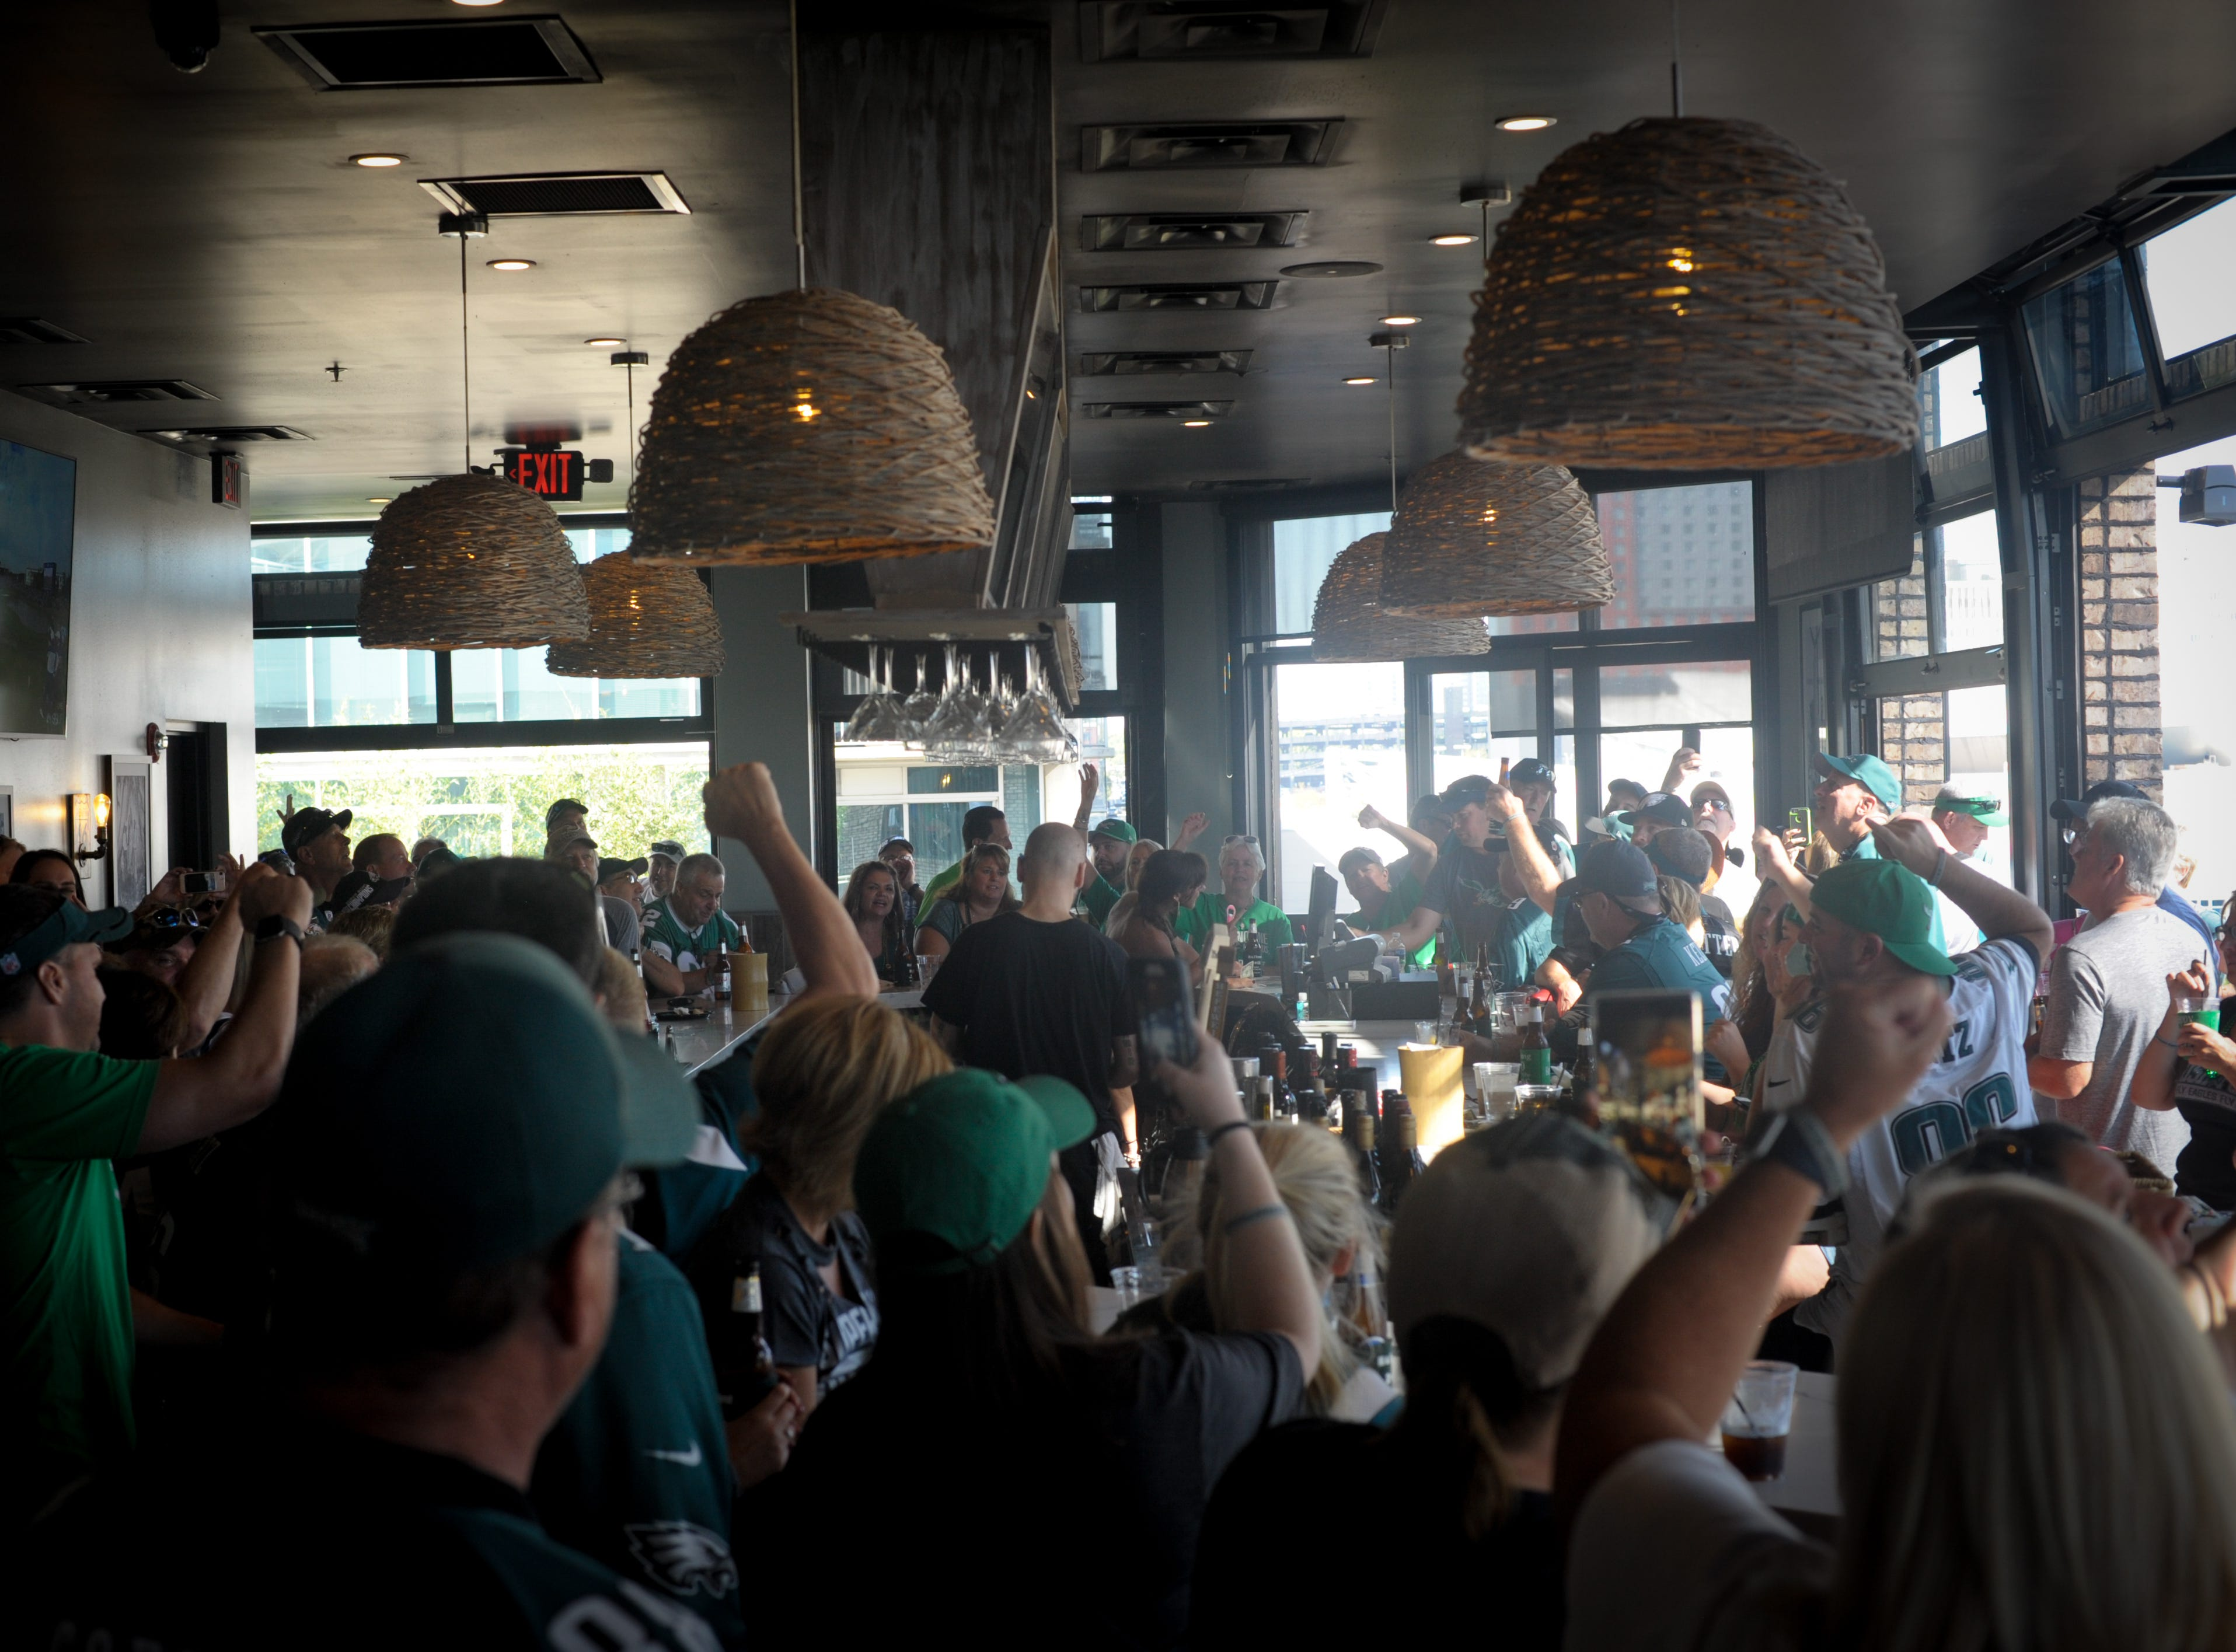 Eagles fans at The Diner in Nashville earlier this season.